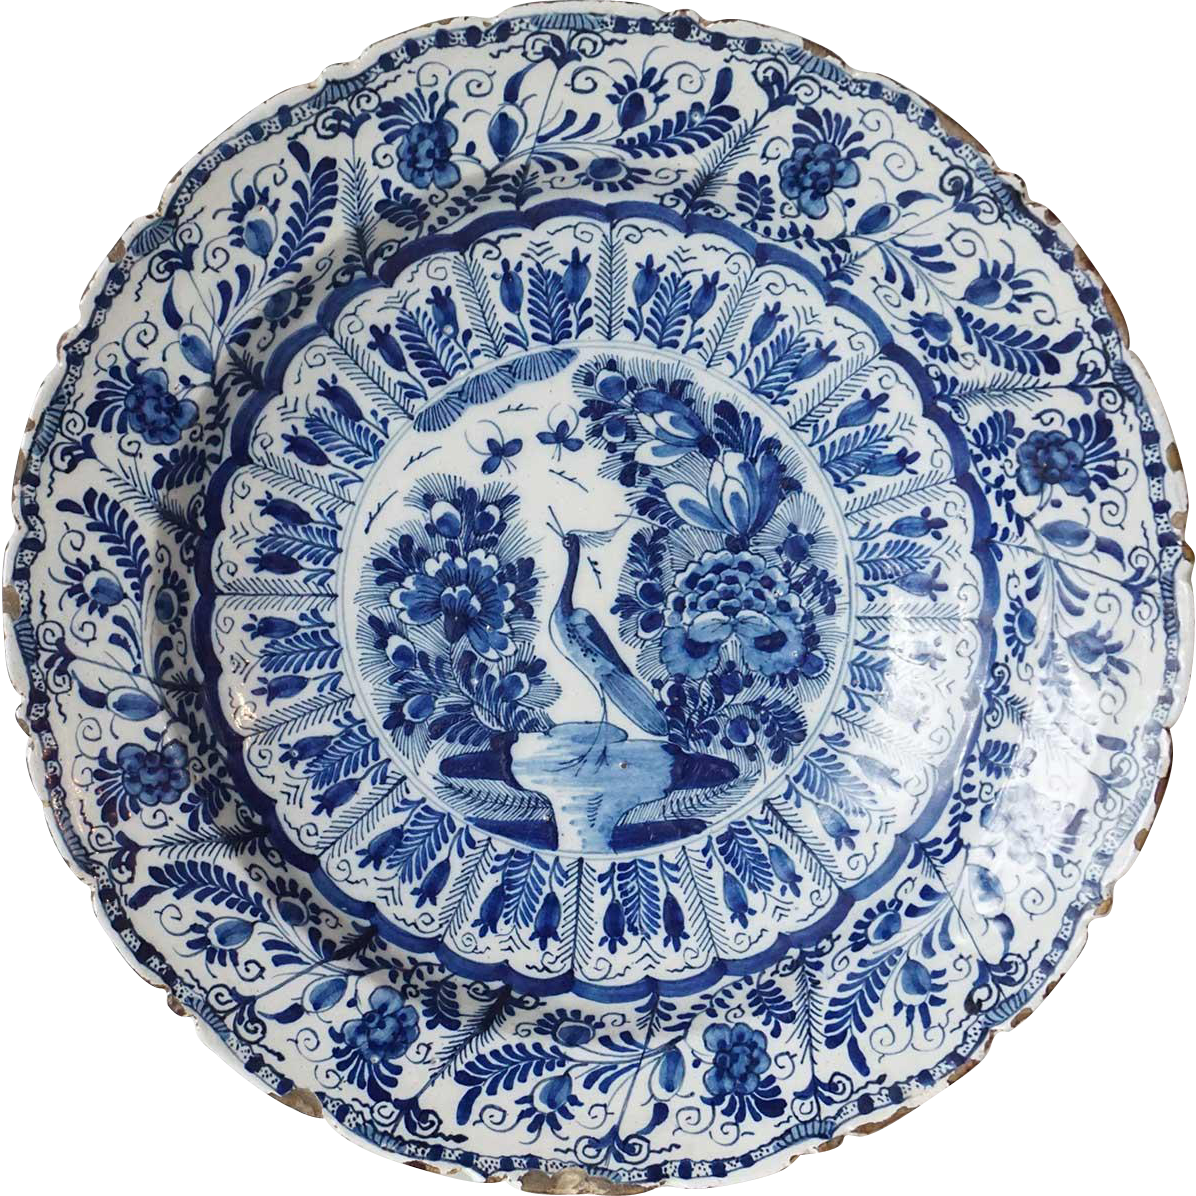 Early Dutch Delft De Klauw Blue and White Pottery Charger